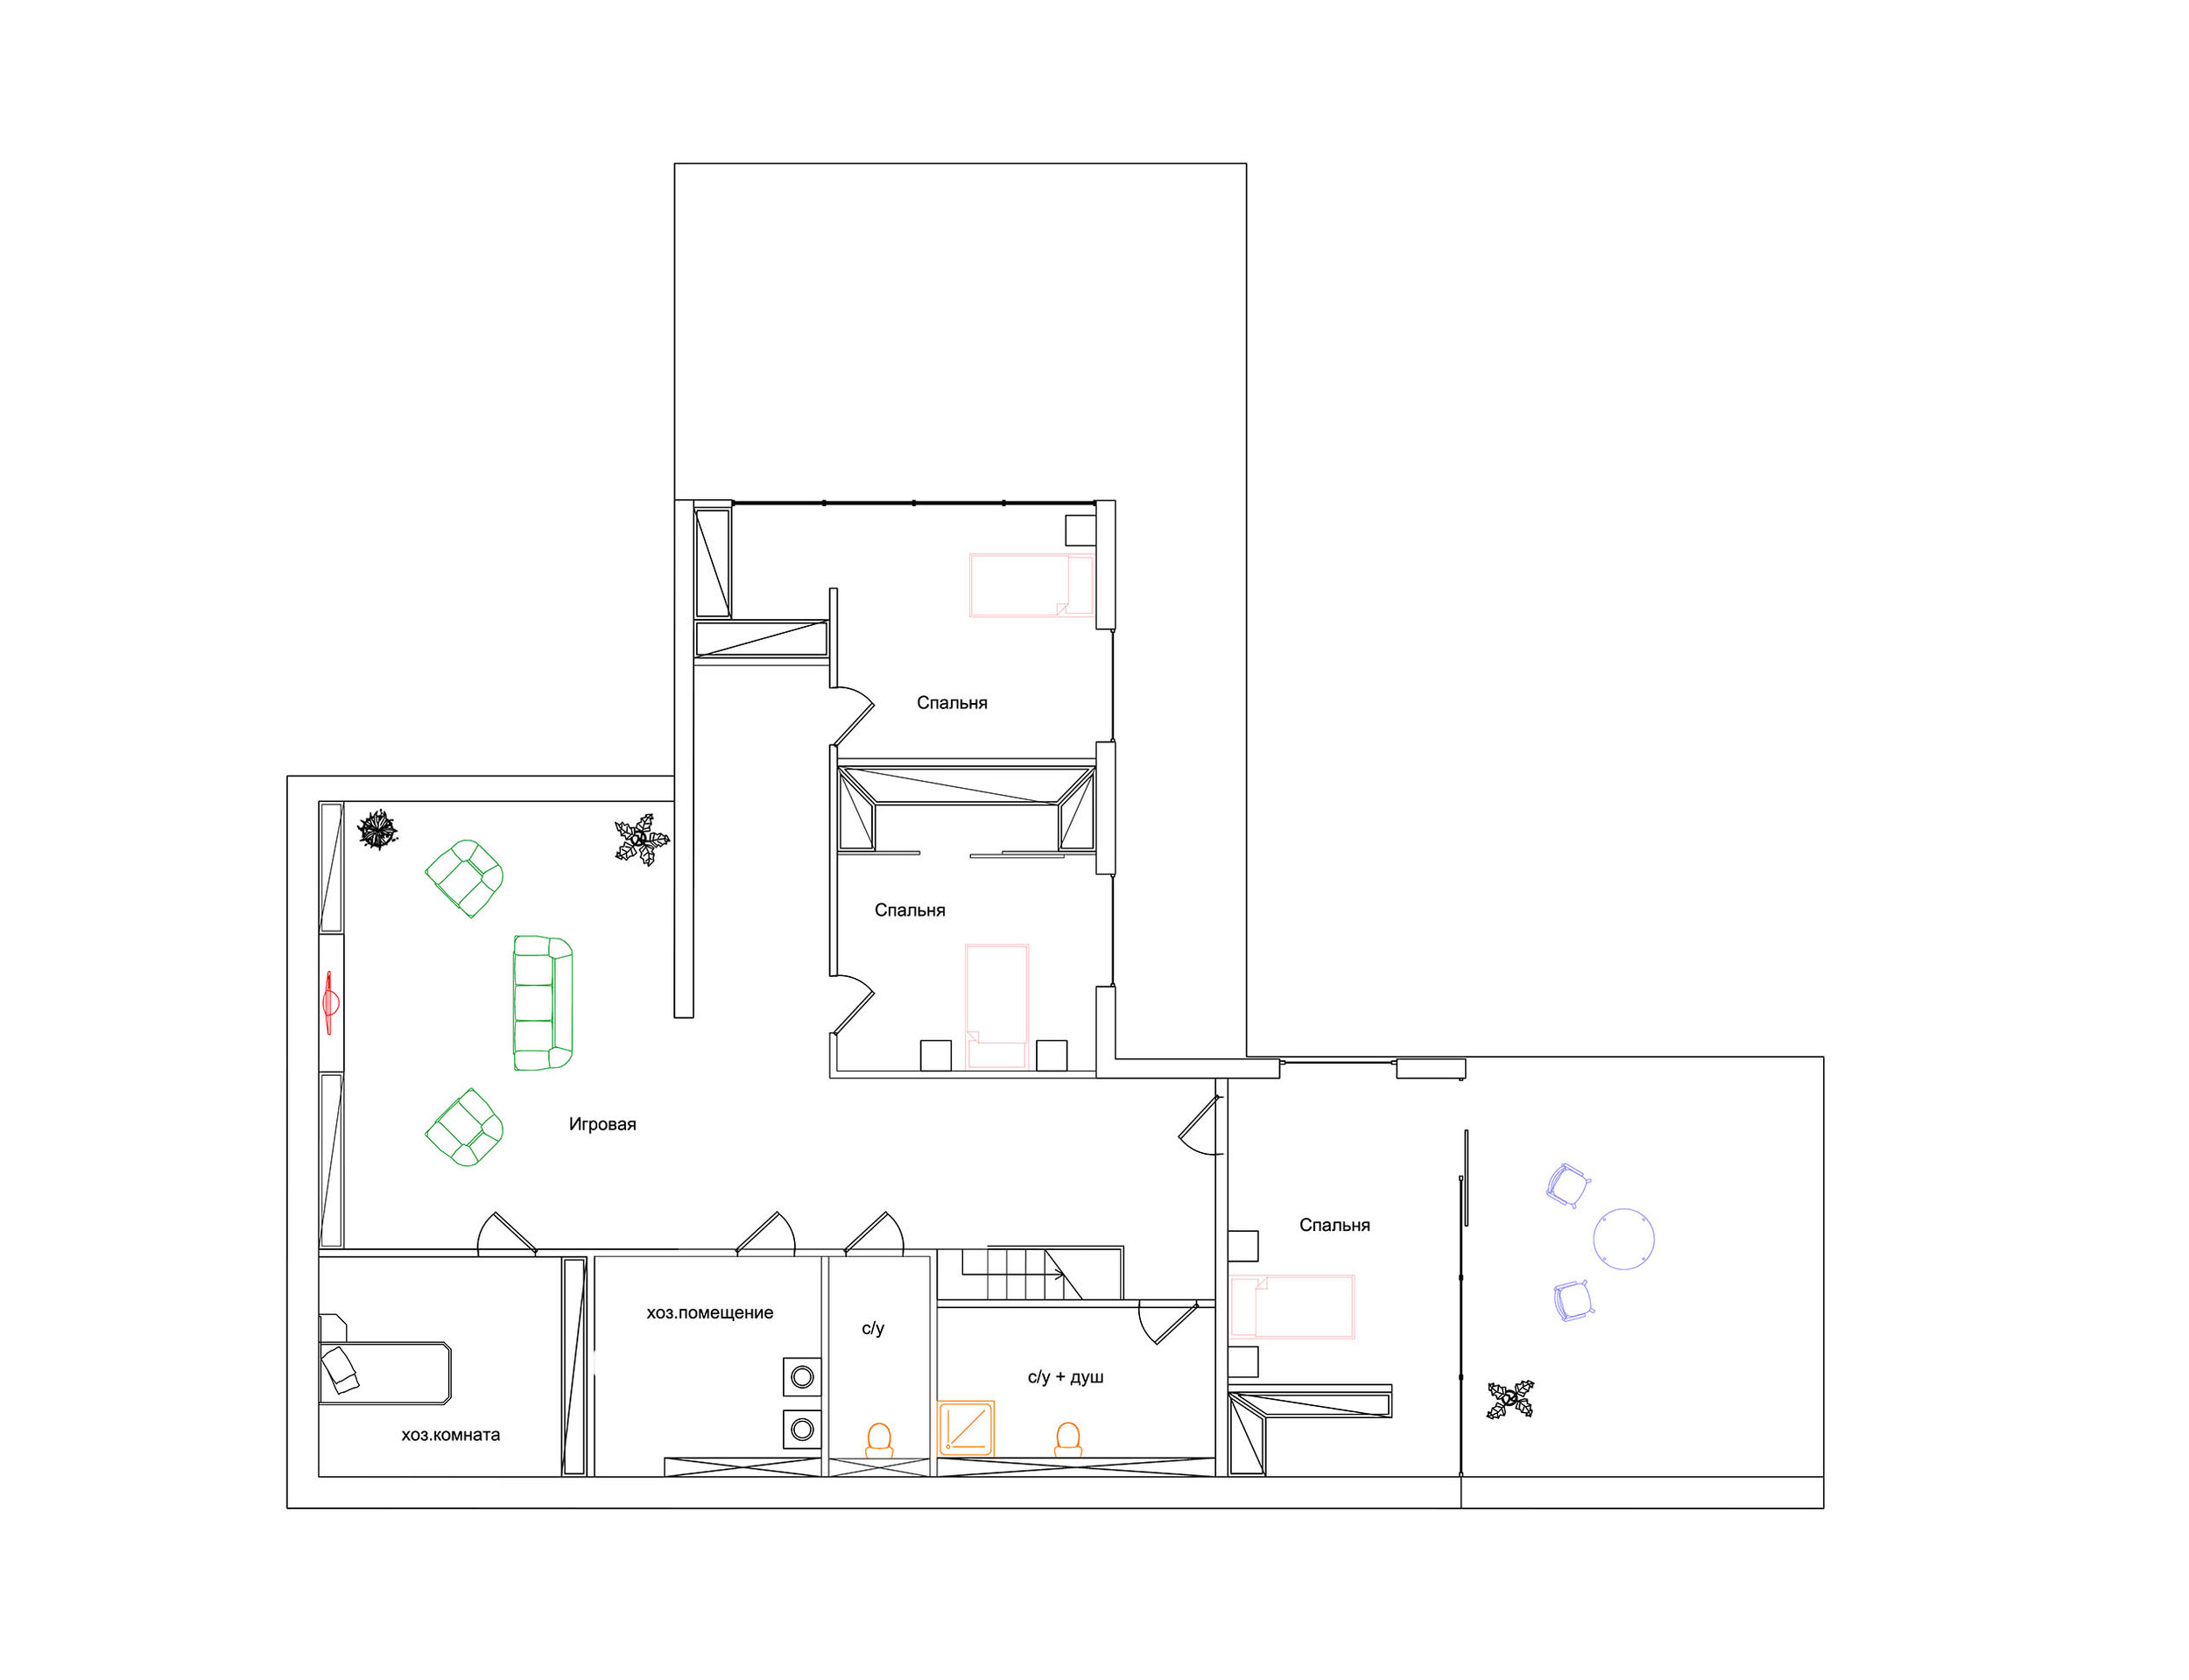 draw second floor